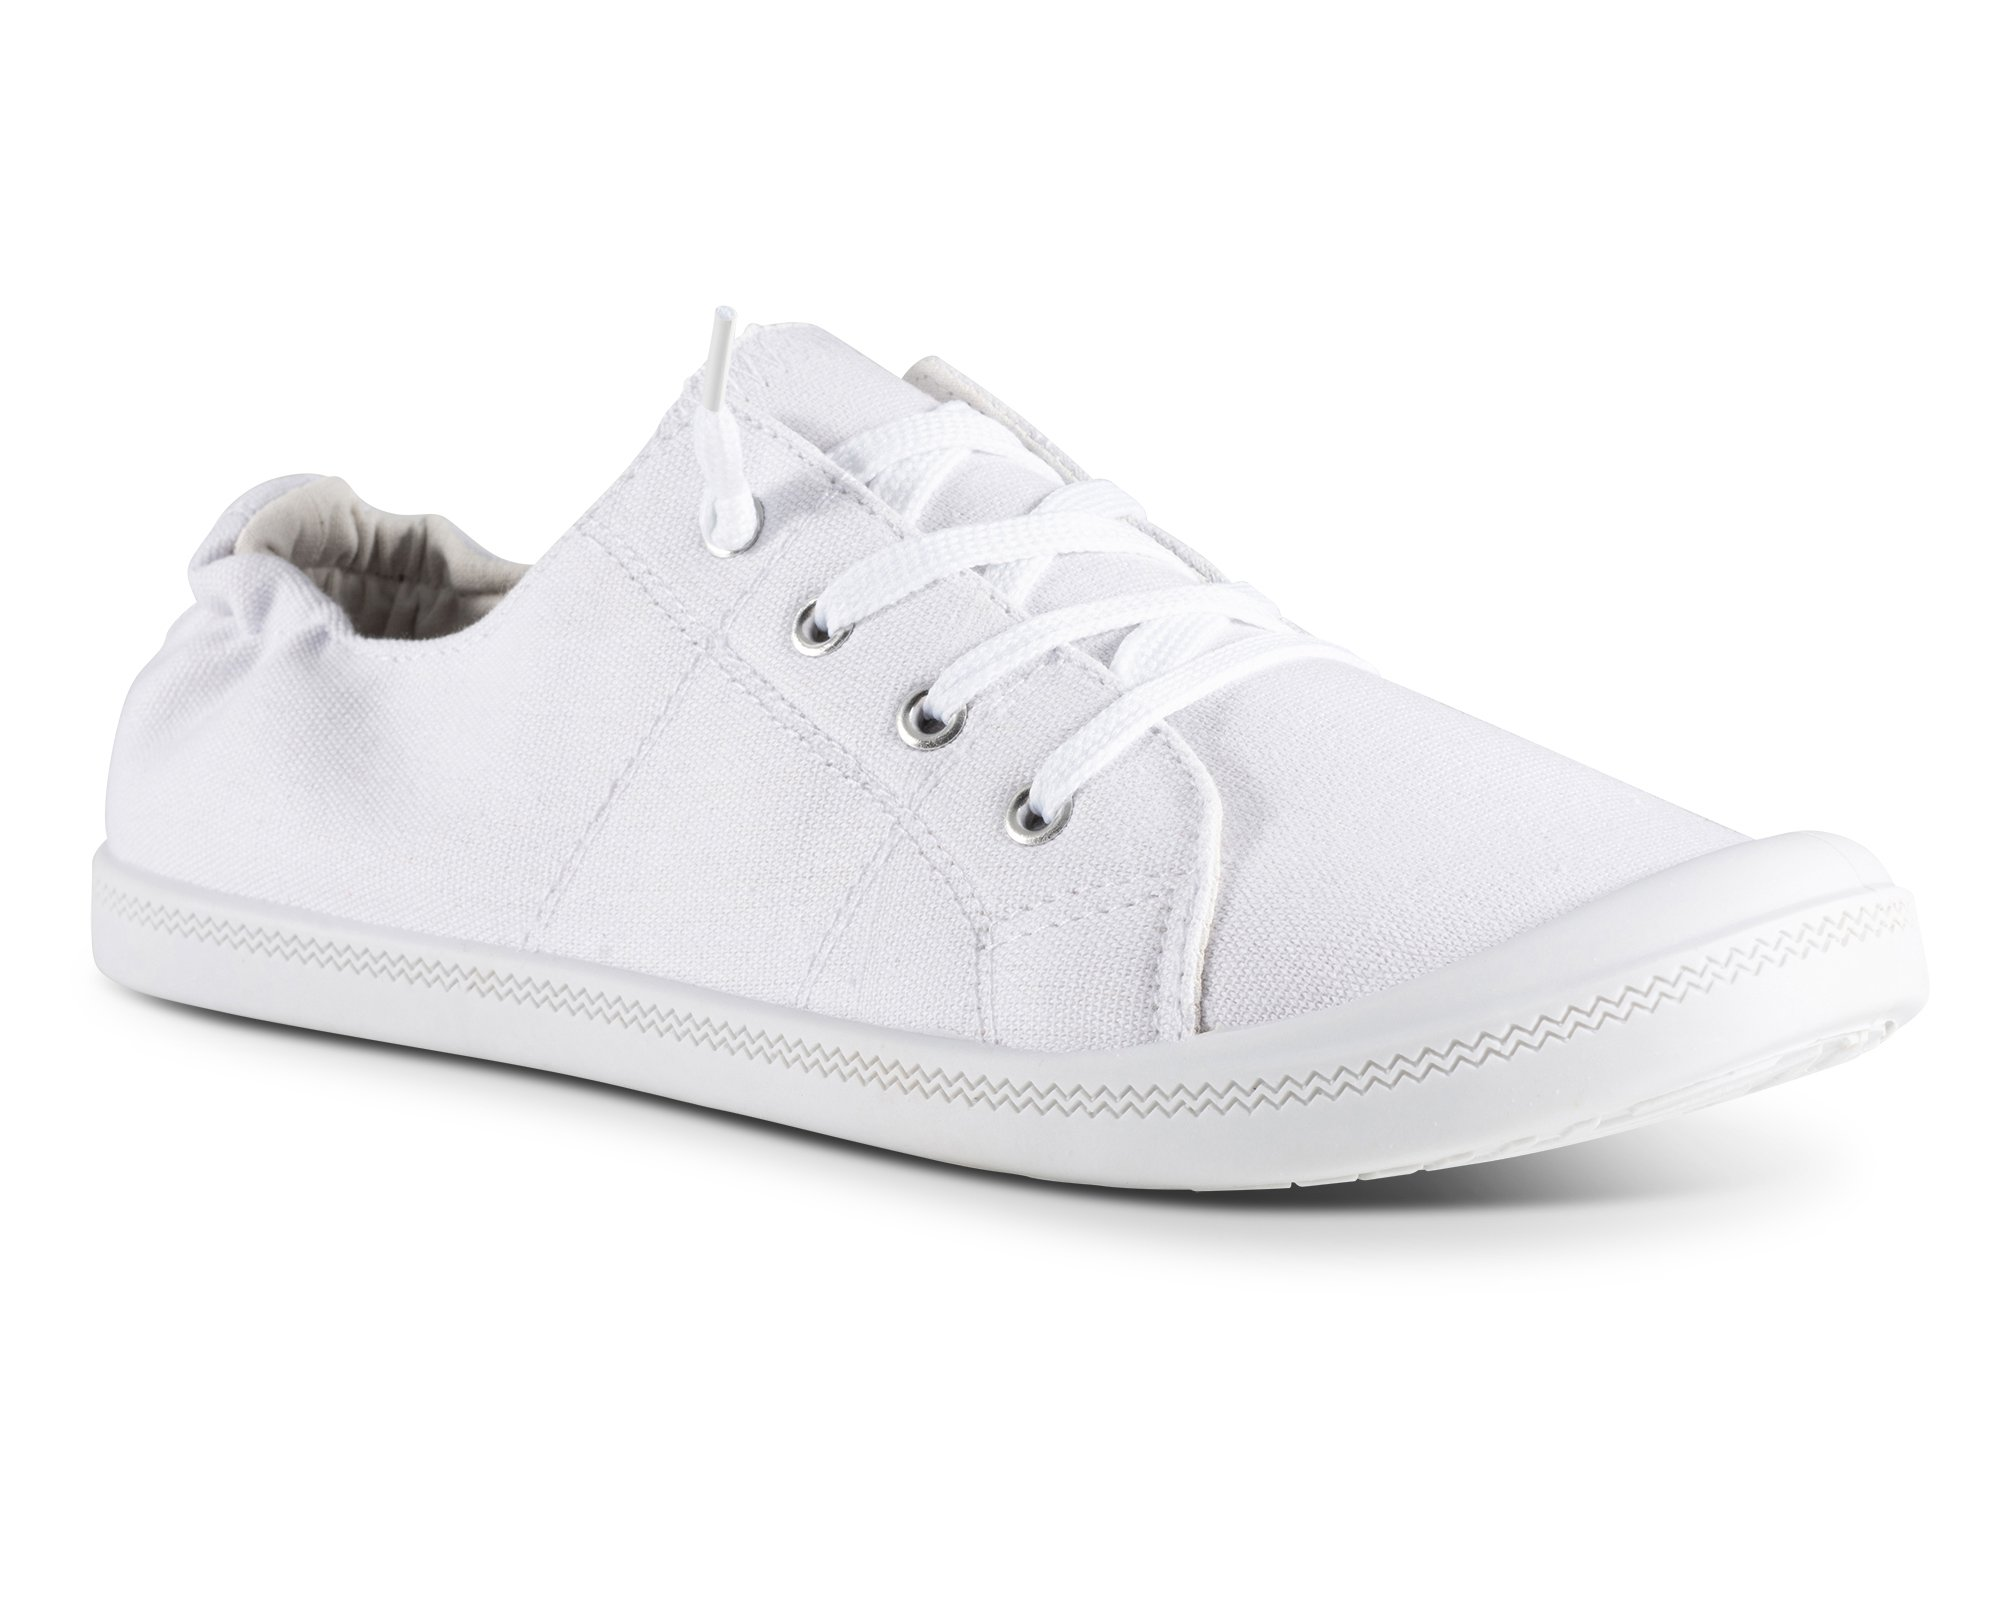 Twisted Womens Andrea Slip-On Canvas Sneakers - ANDREA05 White, Size 8 by Twisted